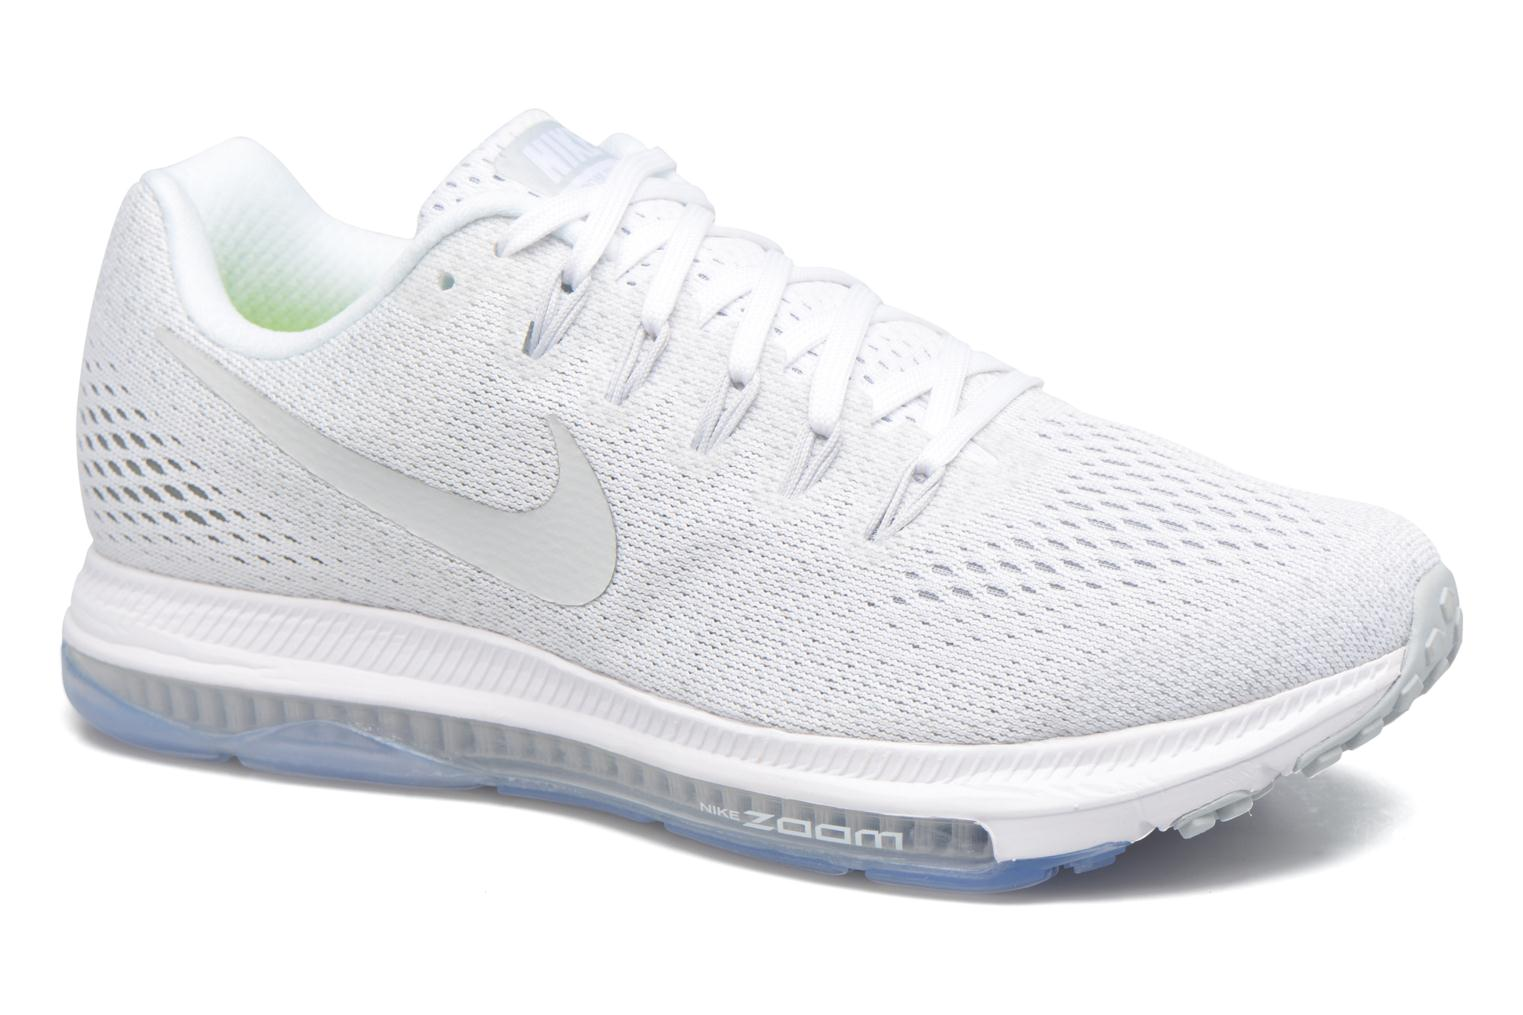 Chaussures de sport Nike Wmns Nike Zoom All Out Low Blanc vue détail/paire